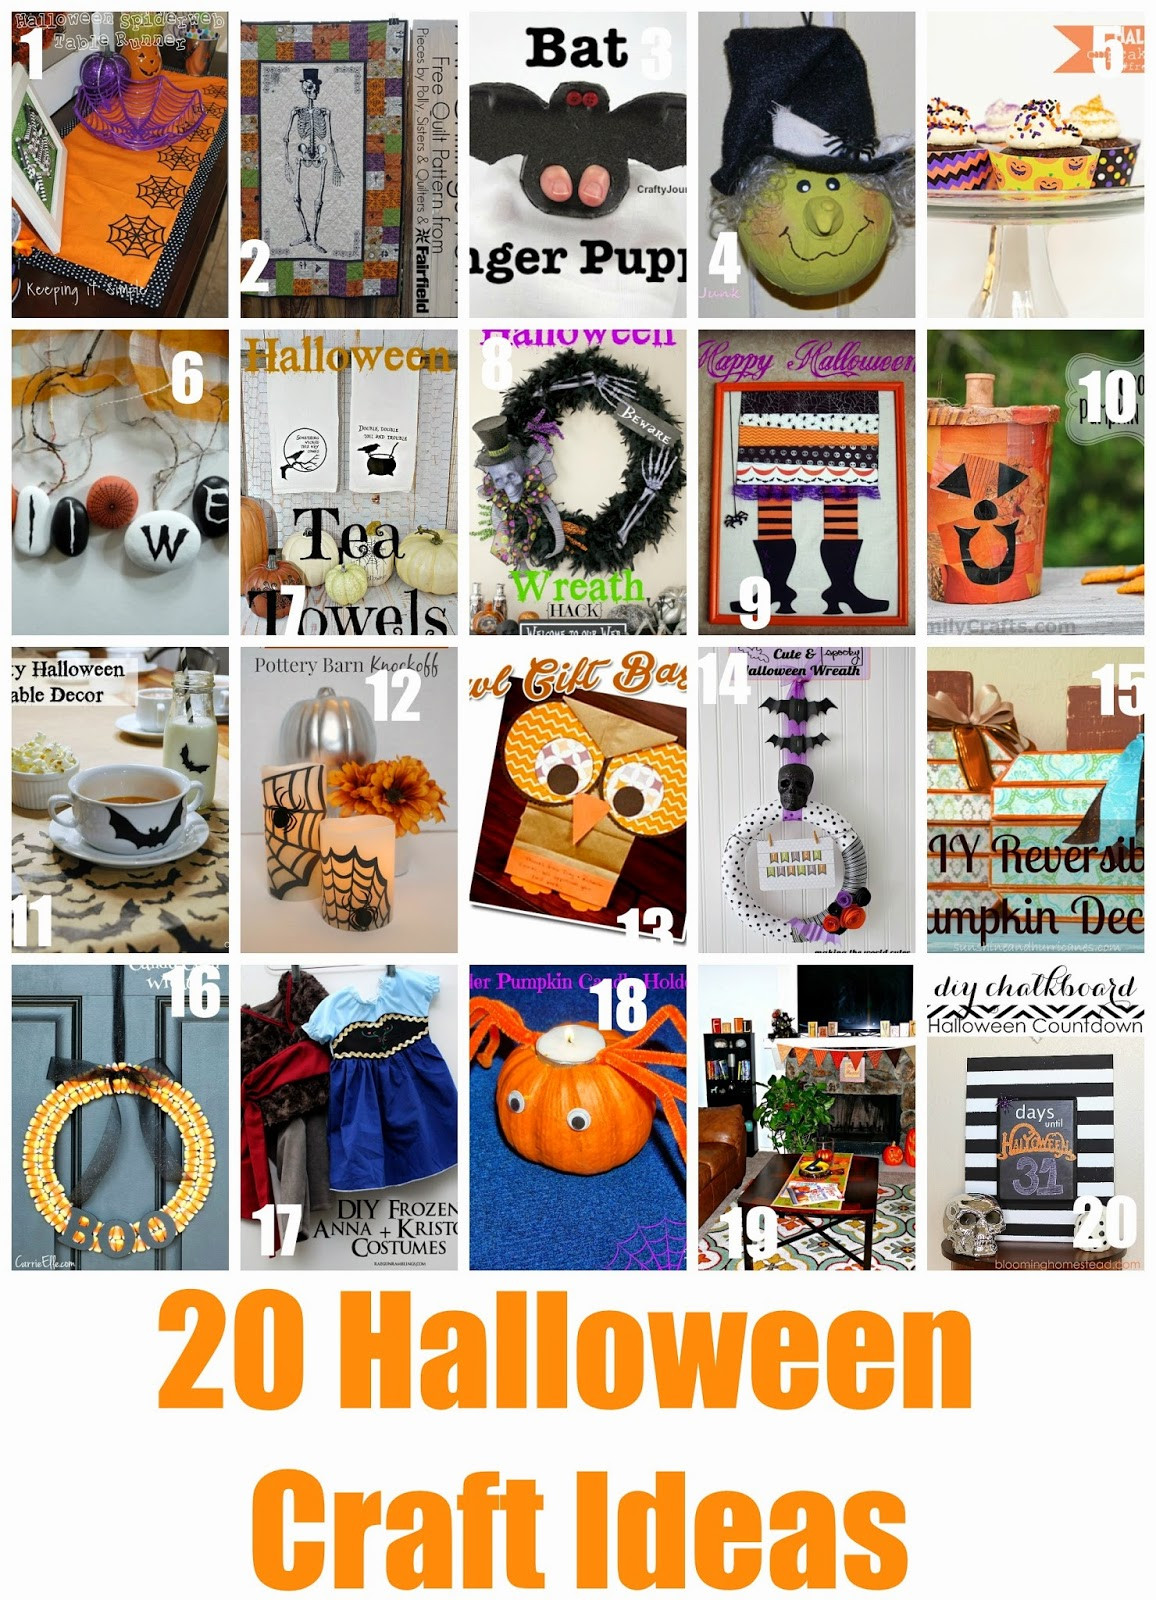 Halloween Party Craft Ideas  Block Party 20 Halloween Craft Ideas Features Page 2 of